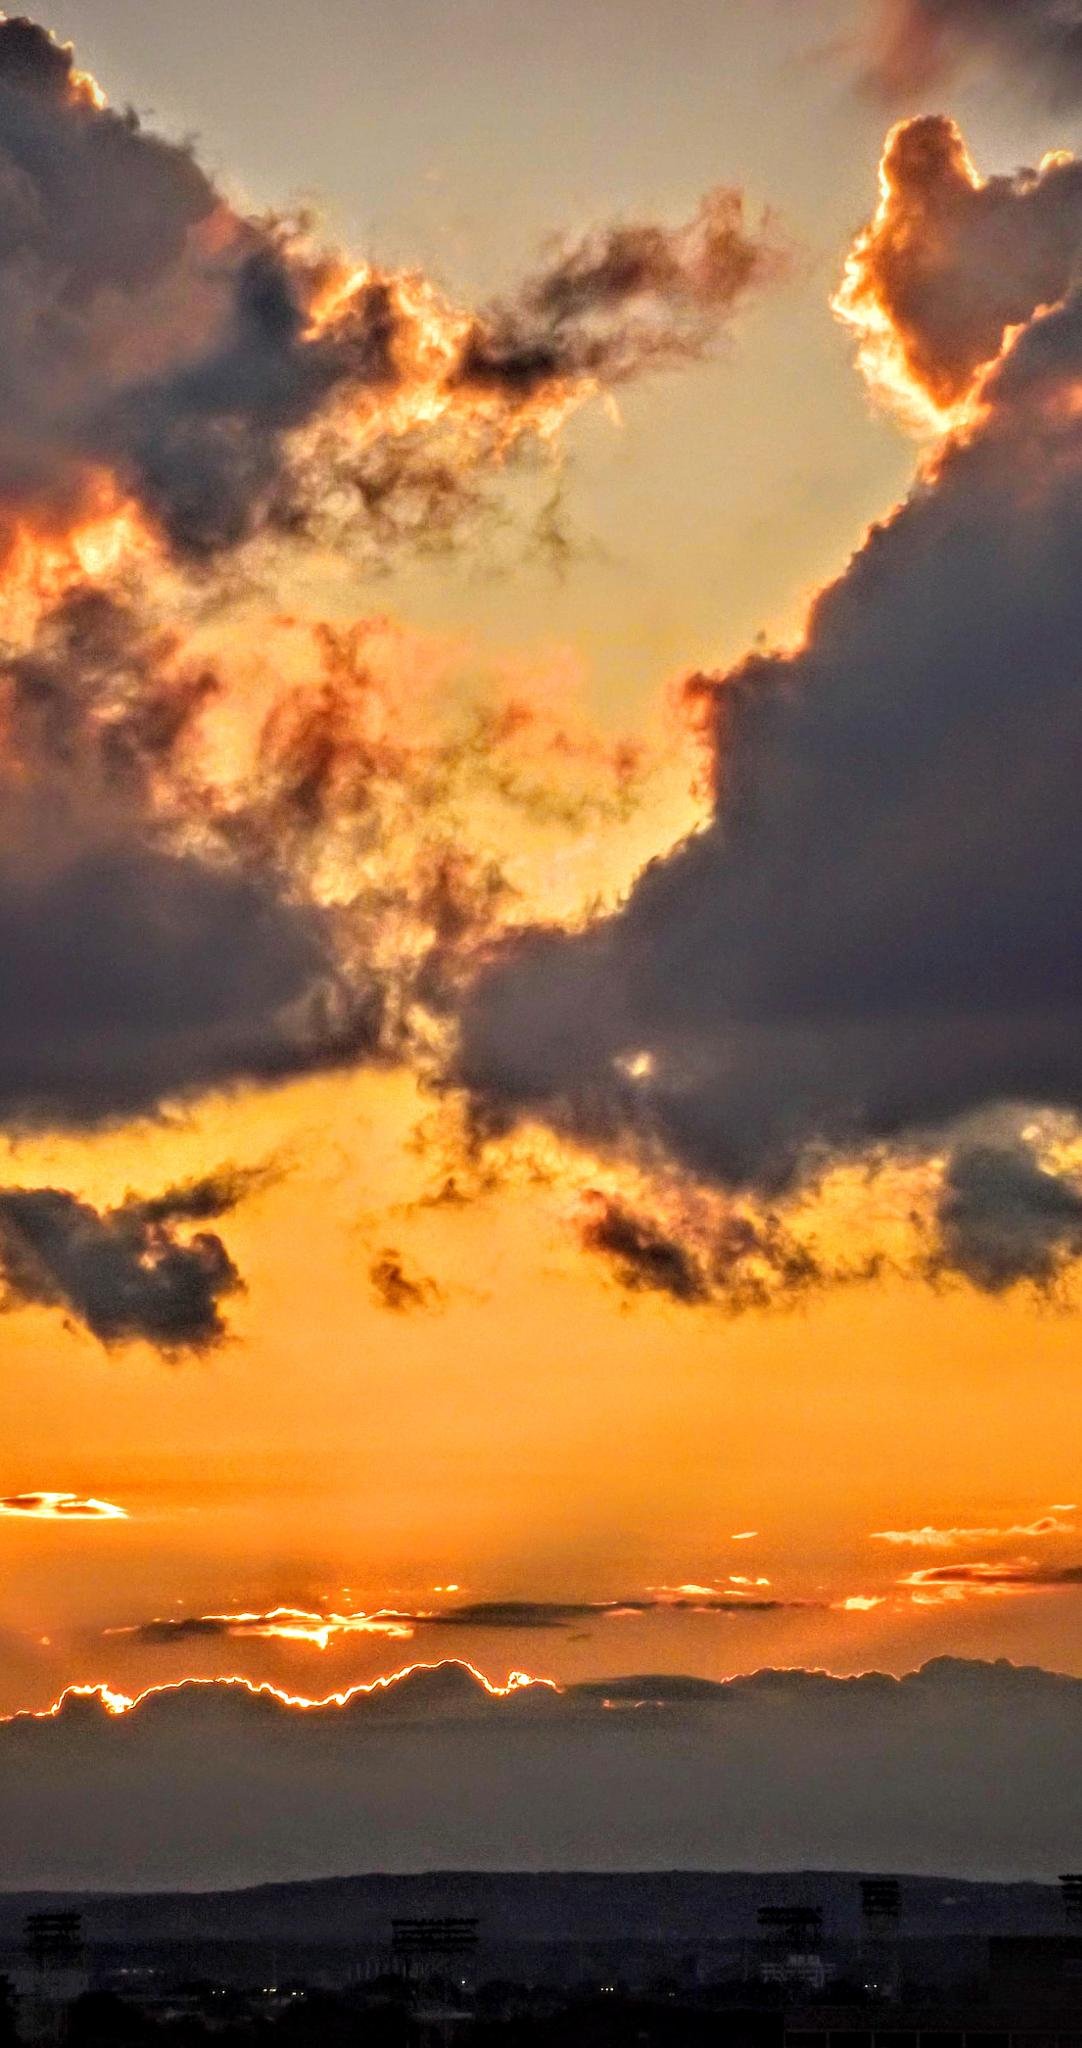 Something hot in the sky by real.michaud.5036